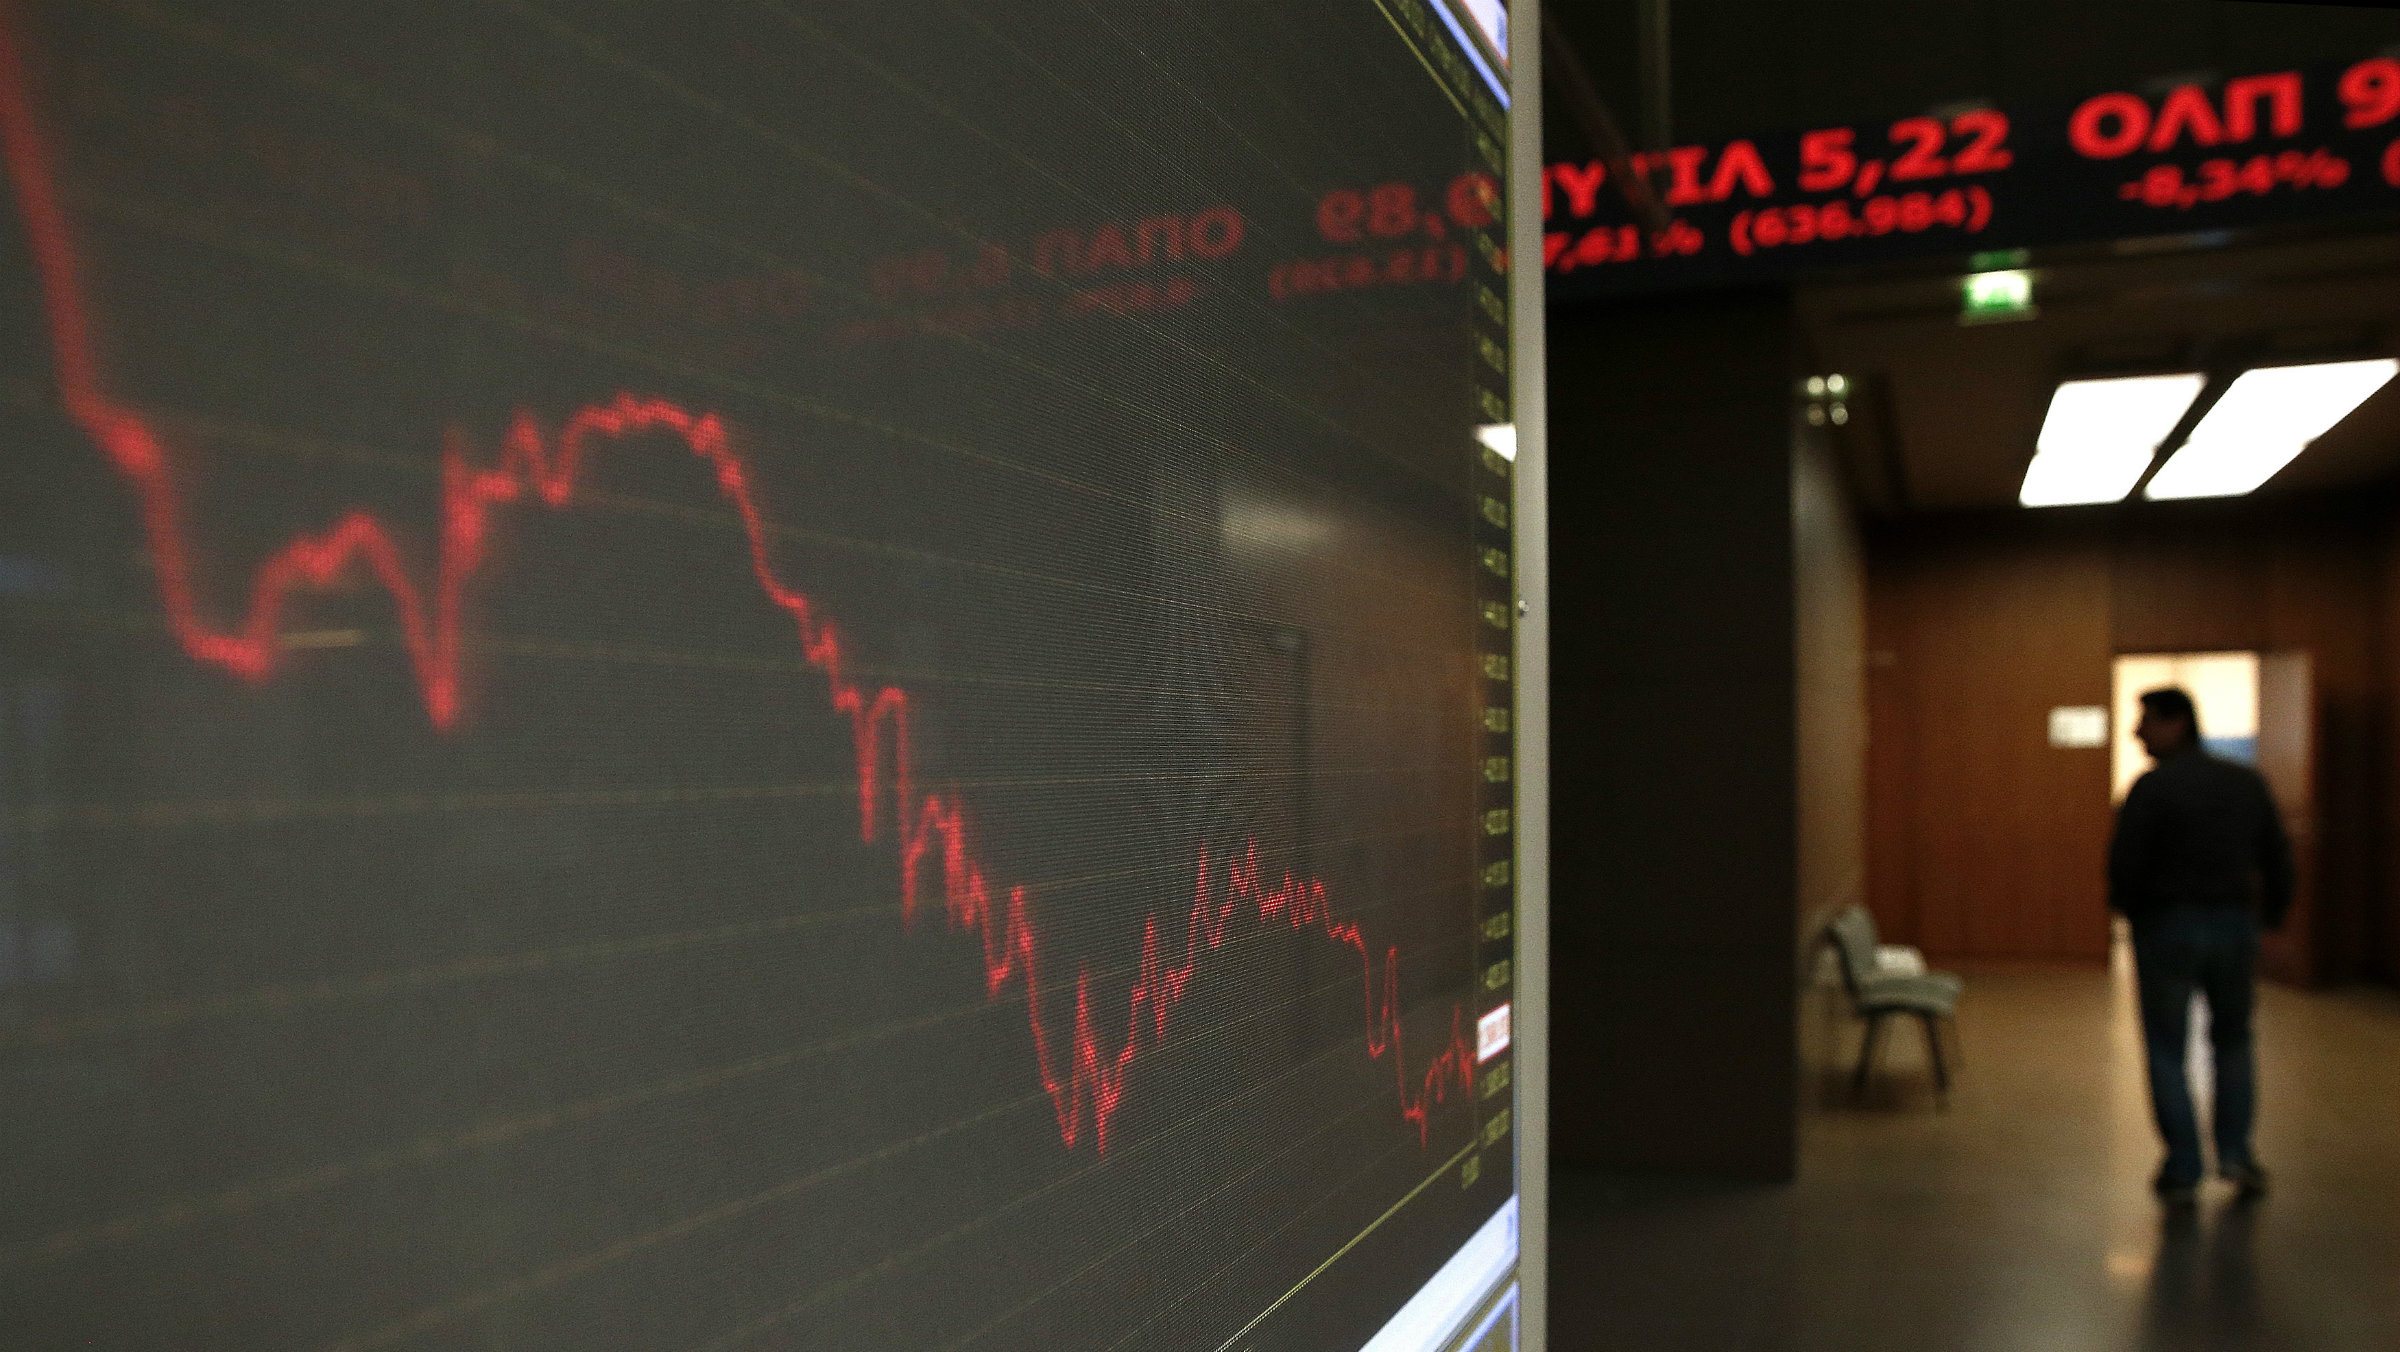 A man walks inside Athens stock exchange as a monitor shows the general index January 28, 2015. The overall Athens stock market fell almost 8 percent, while Greek five-year government bond yields hit around 13.5 percent. This marked their highest level since a 2012 restructuring which wrote off a large proportion of Greek debt held by private investors. REUTERS/Alkis Konstantinidis (GREECE - Tags: POLITICS BUSINESS)